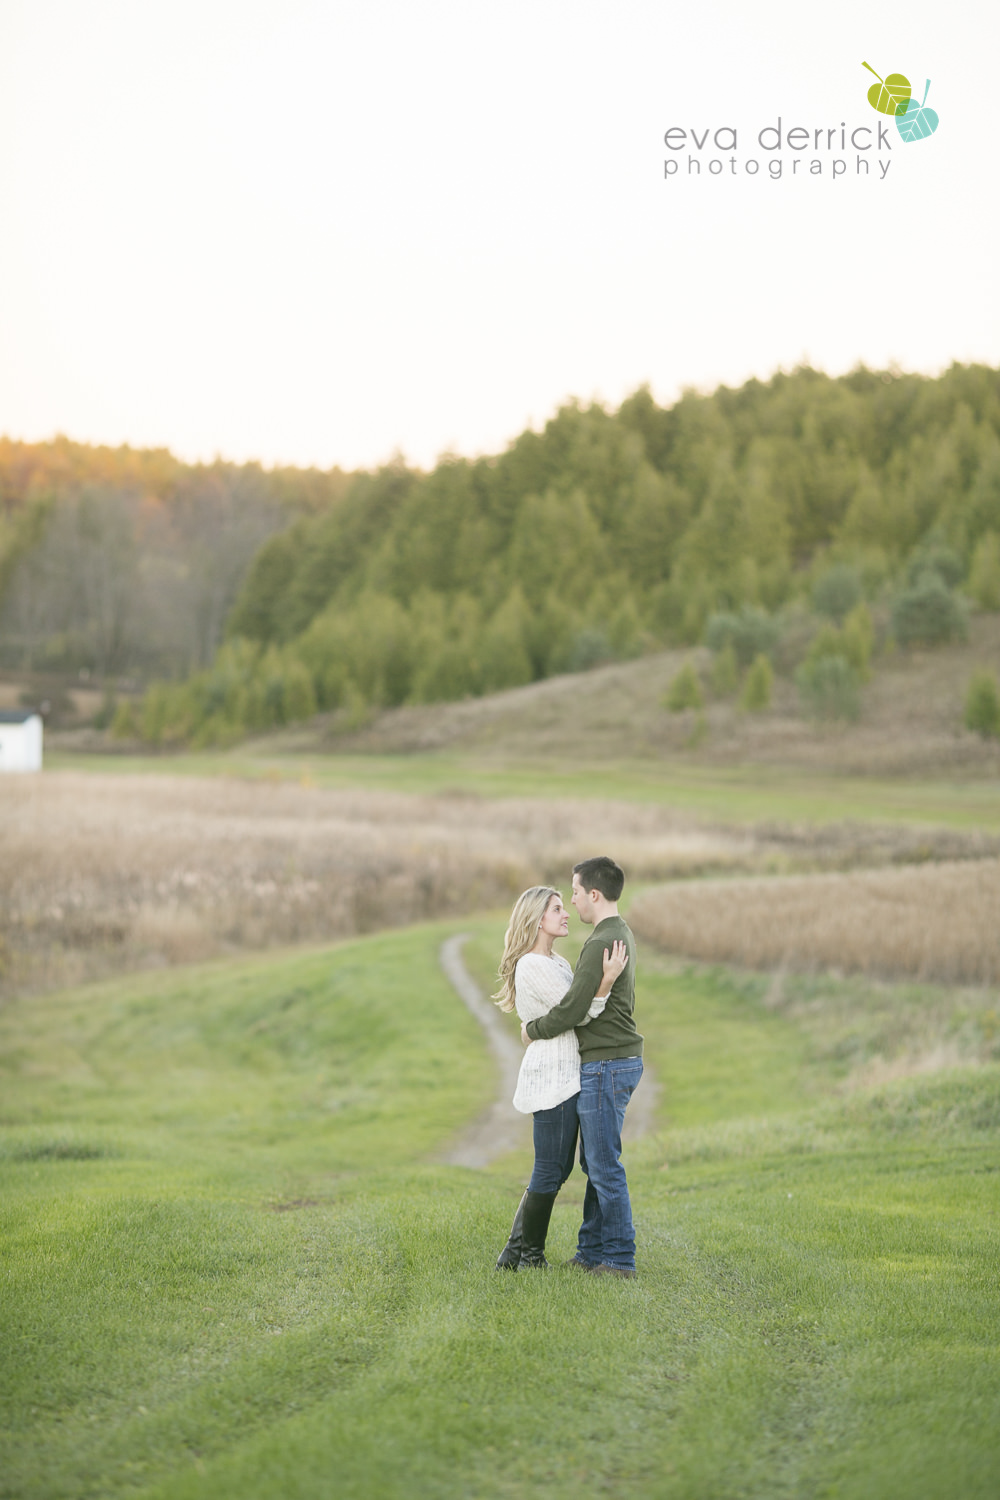 Albion-Hills-Photographer-Engagement-Session-Alanna-Matt-photography-by-Eva-Derrick-Photography-023.JPG